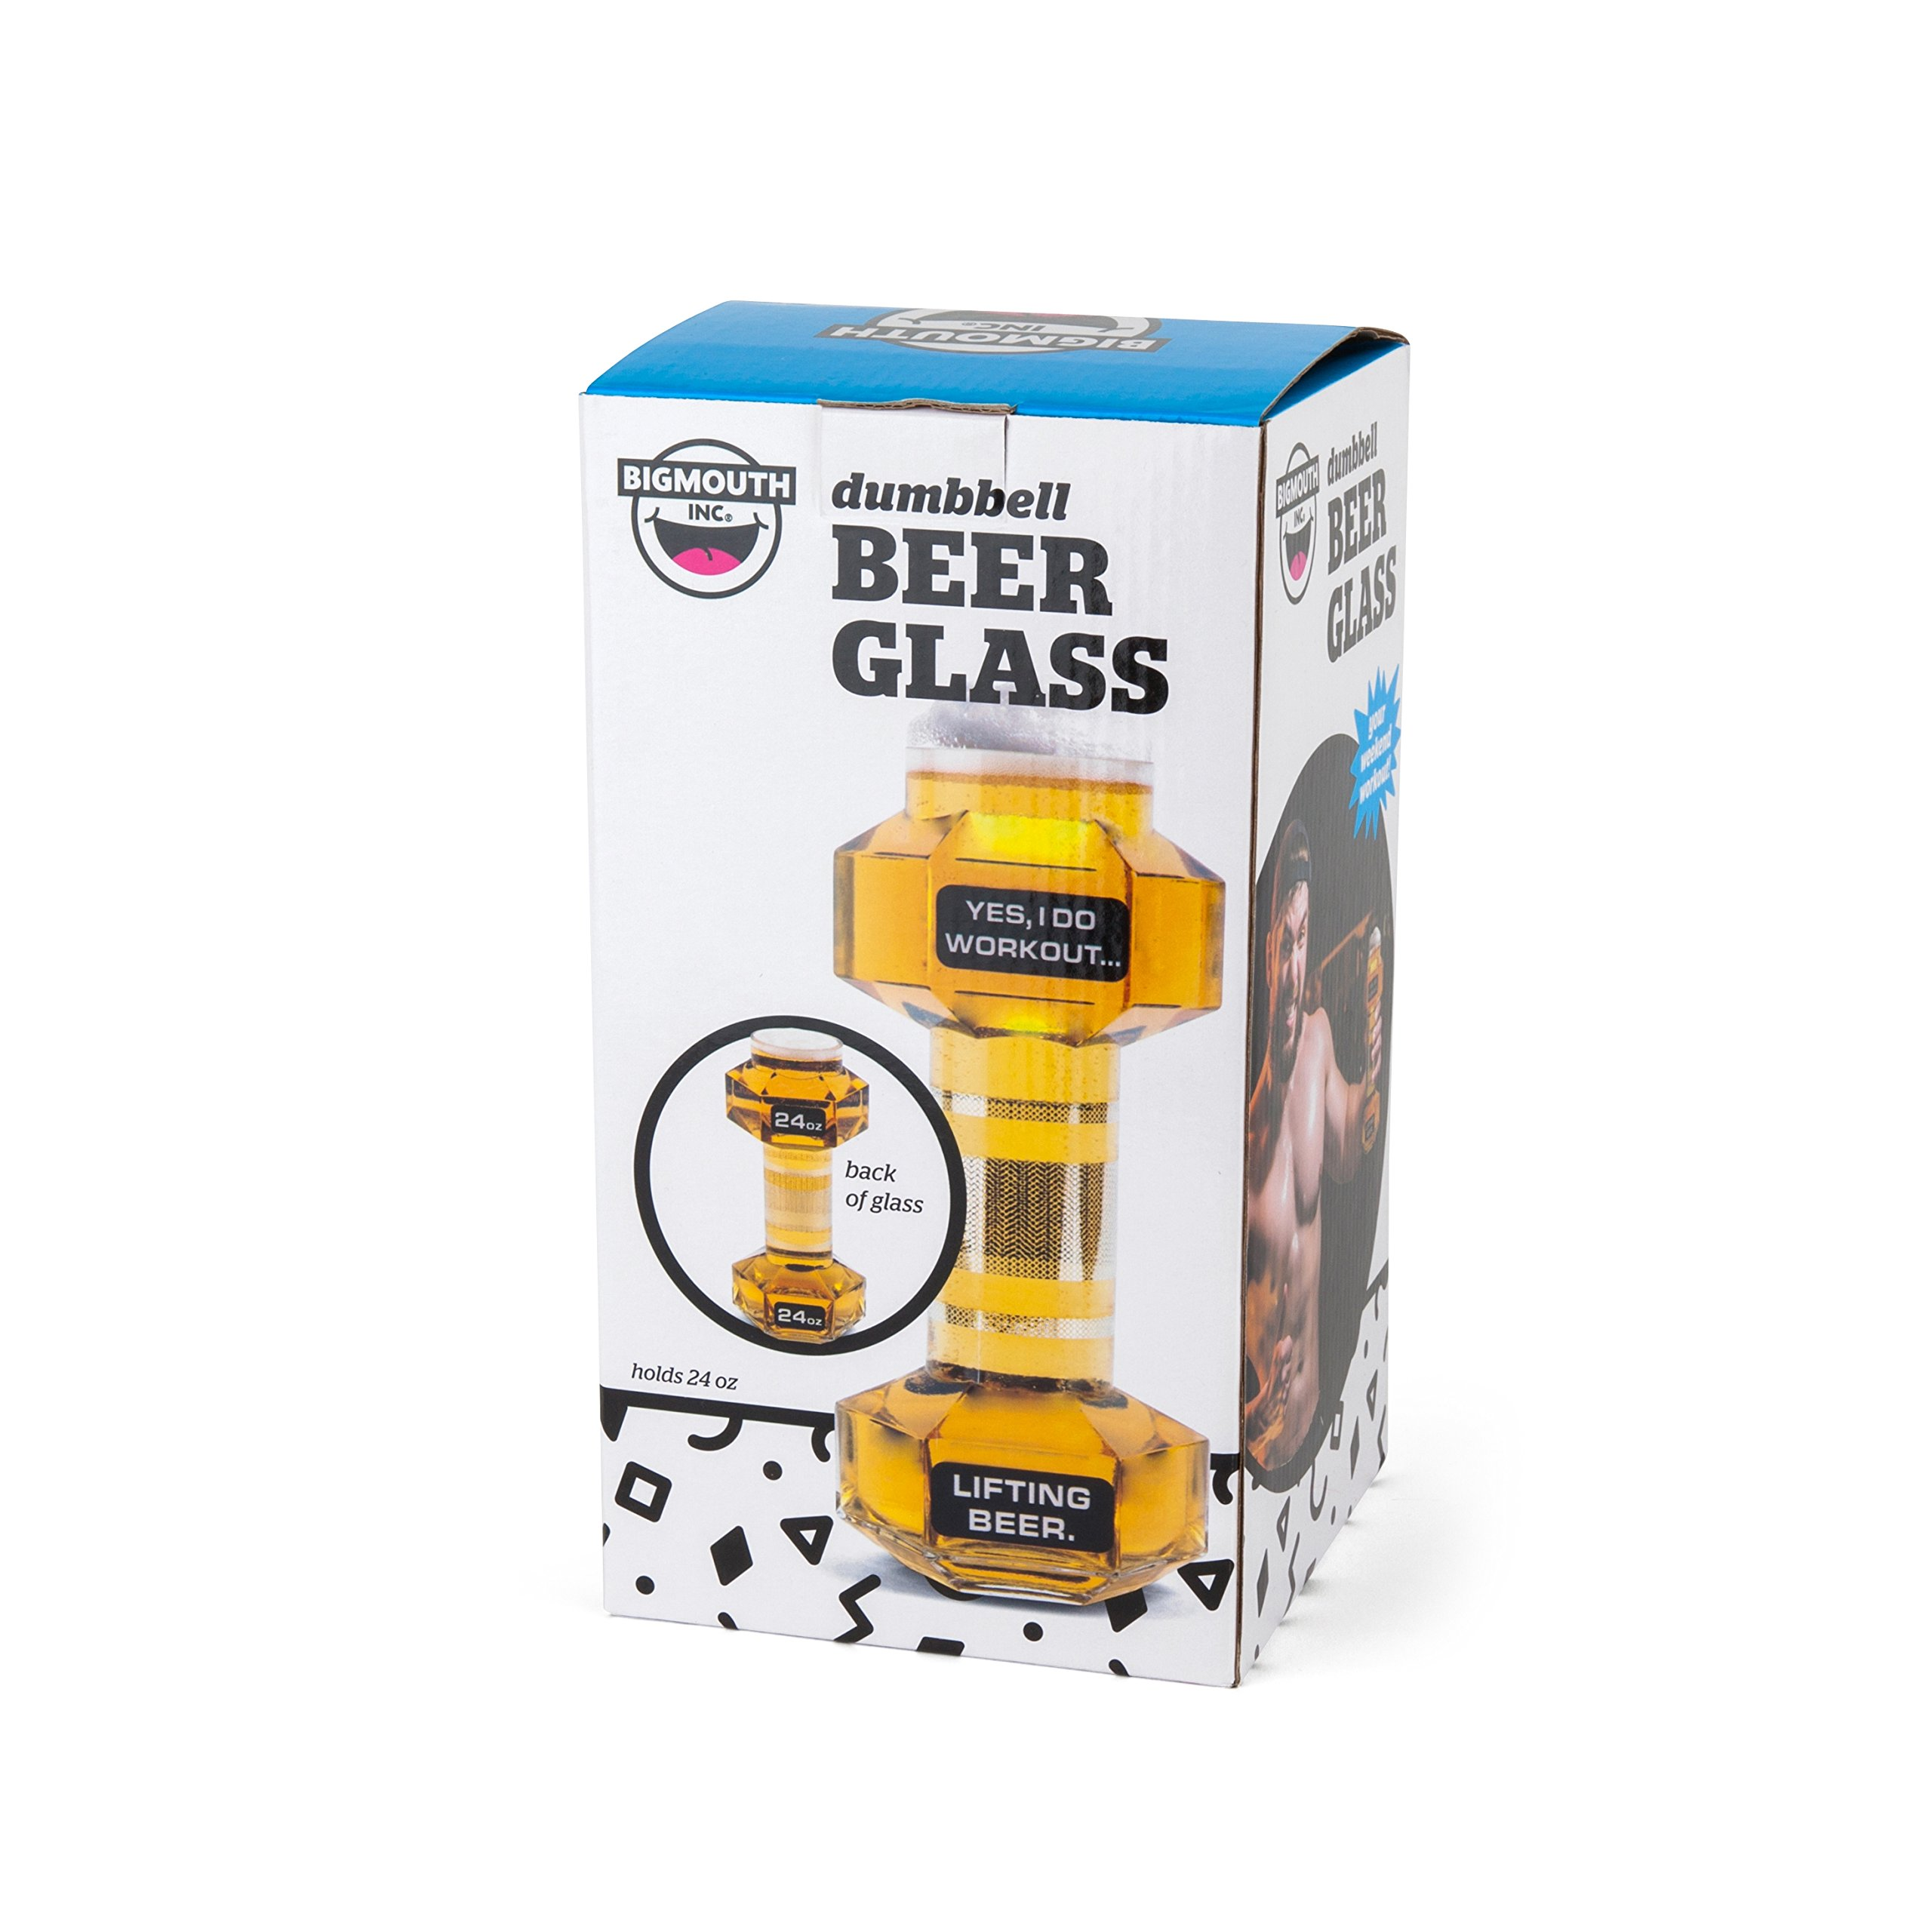 BigMouth Inc Dumbbell Beer Glass, Great Gag Gift for Weight Lifters, Exercise Fanatics, Made of Glass by BigMouth Inc (Image #4)